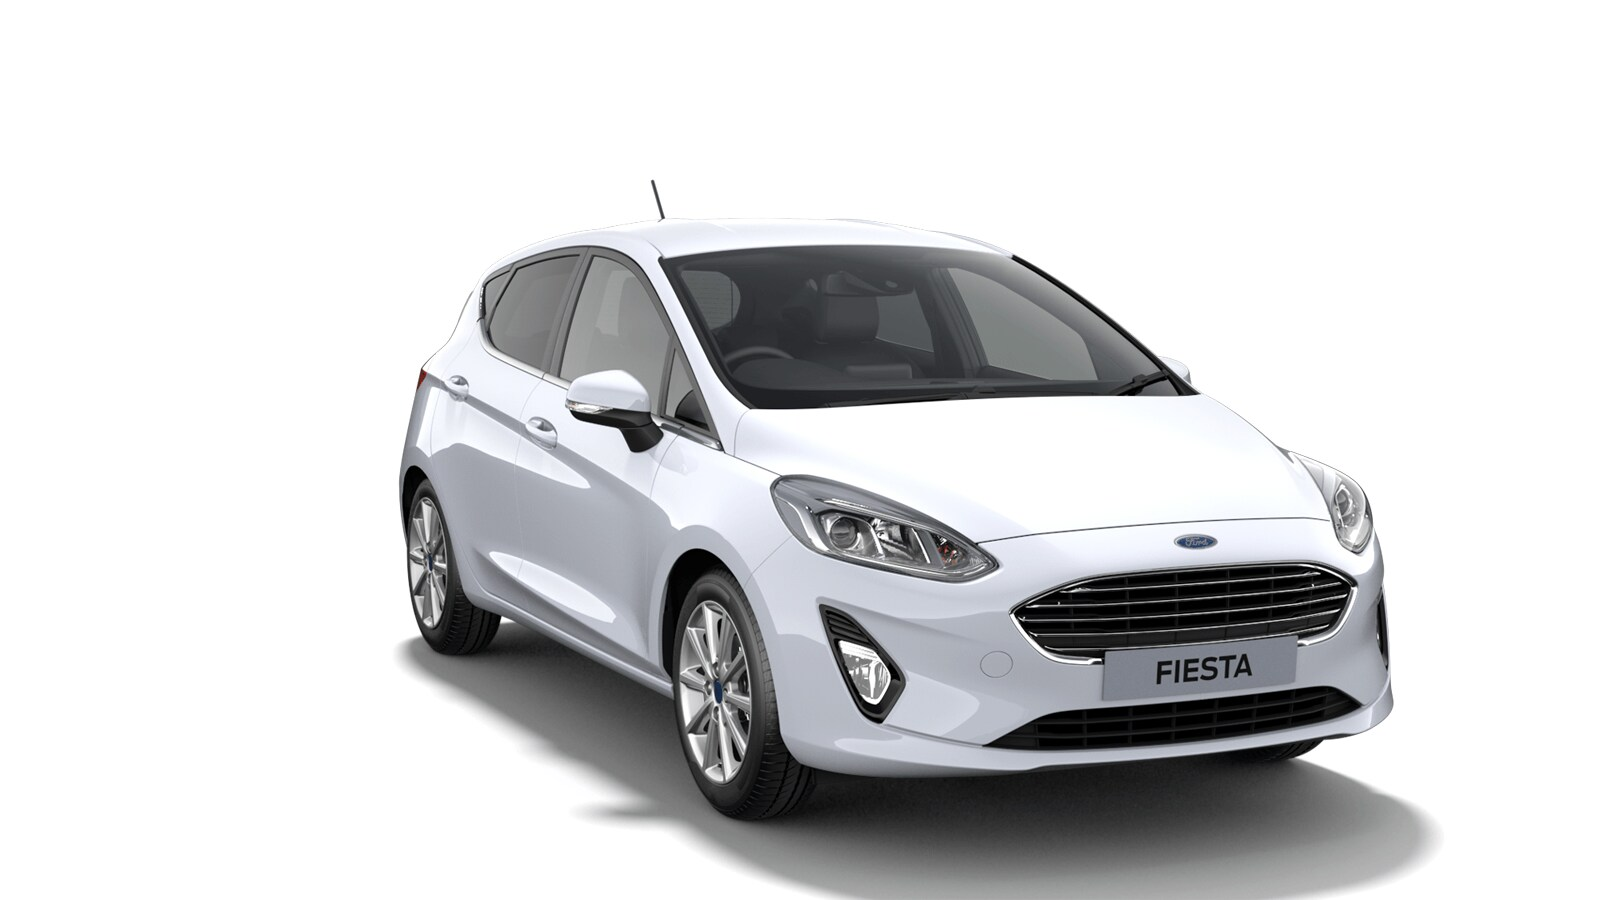 Ford Fiesta Titanium 1.0L EcoBoost 125PS at Ludham Garage